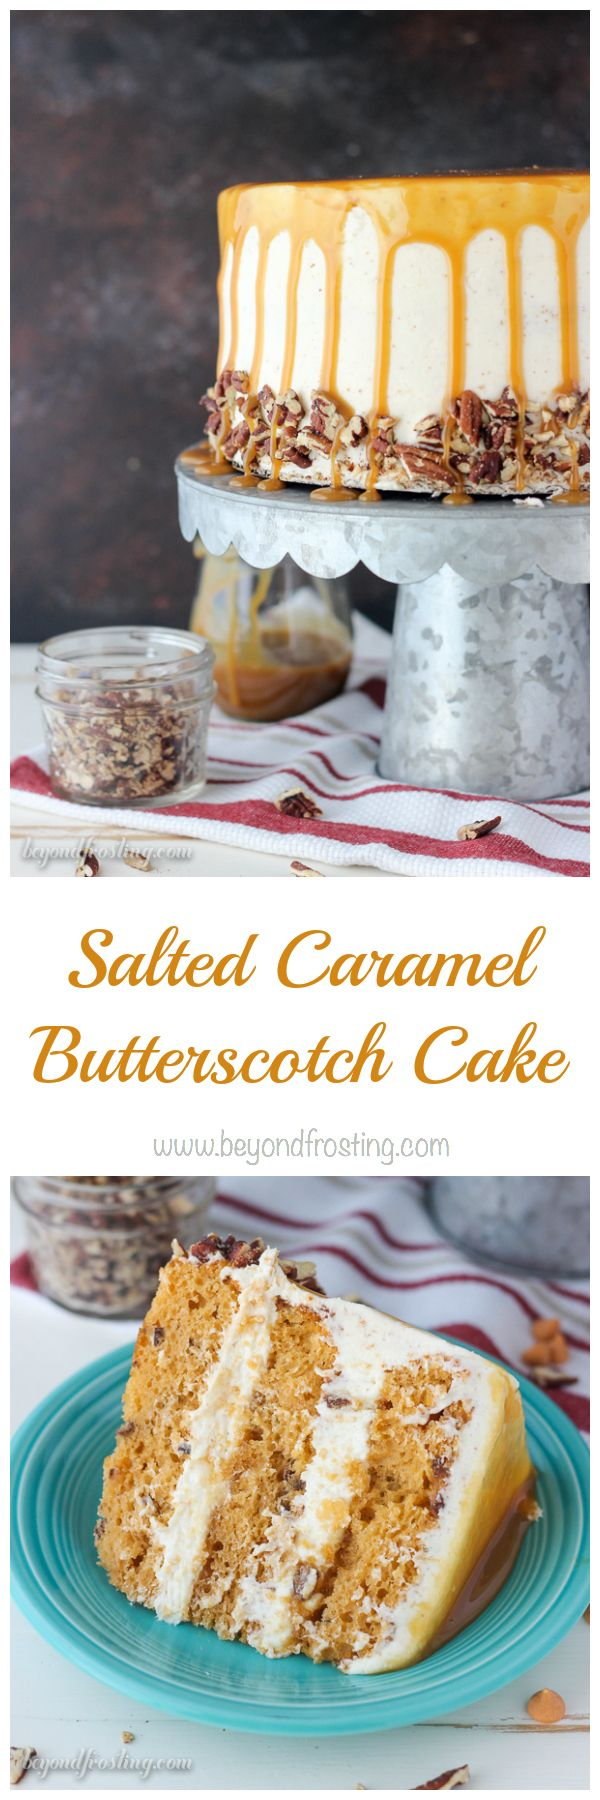 This Salted Caramel Butterscotch cake is one of the best cakes I've ever eaten! The dreamy brown butter frosting is the perfect addition to the rich butterscotc